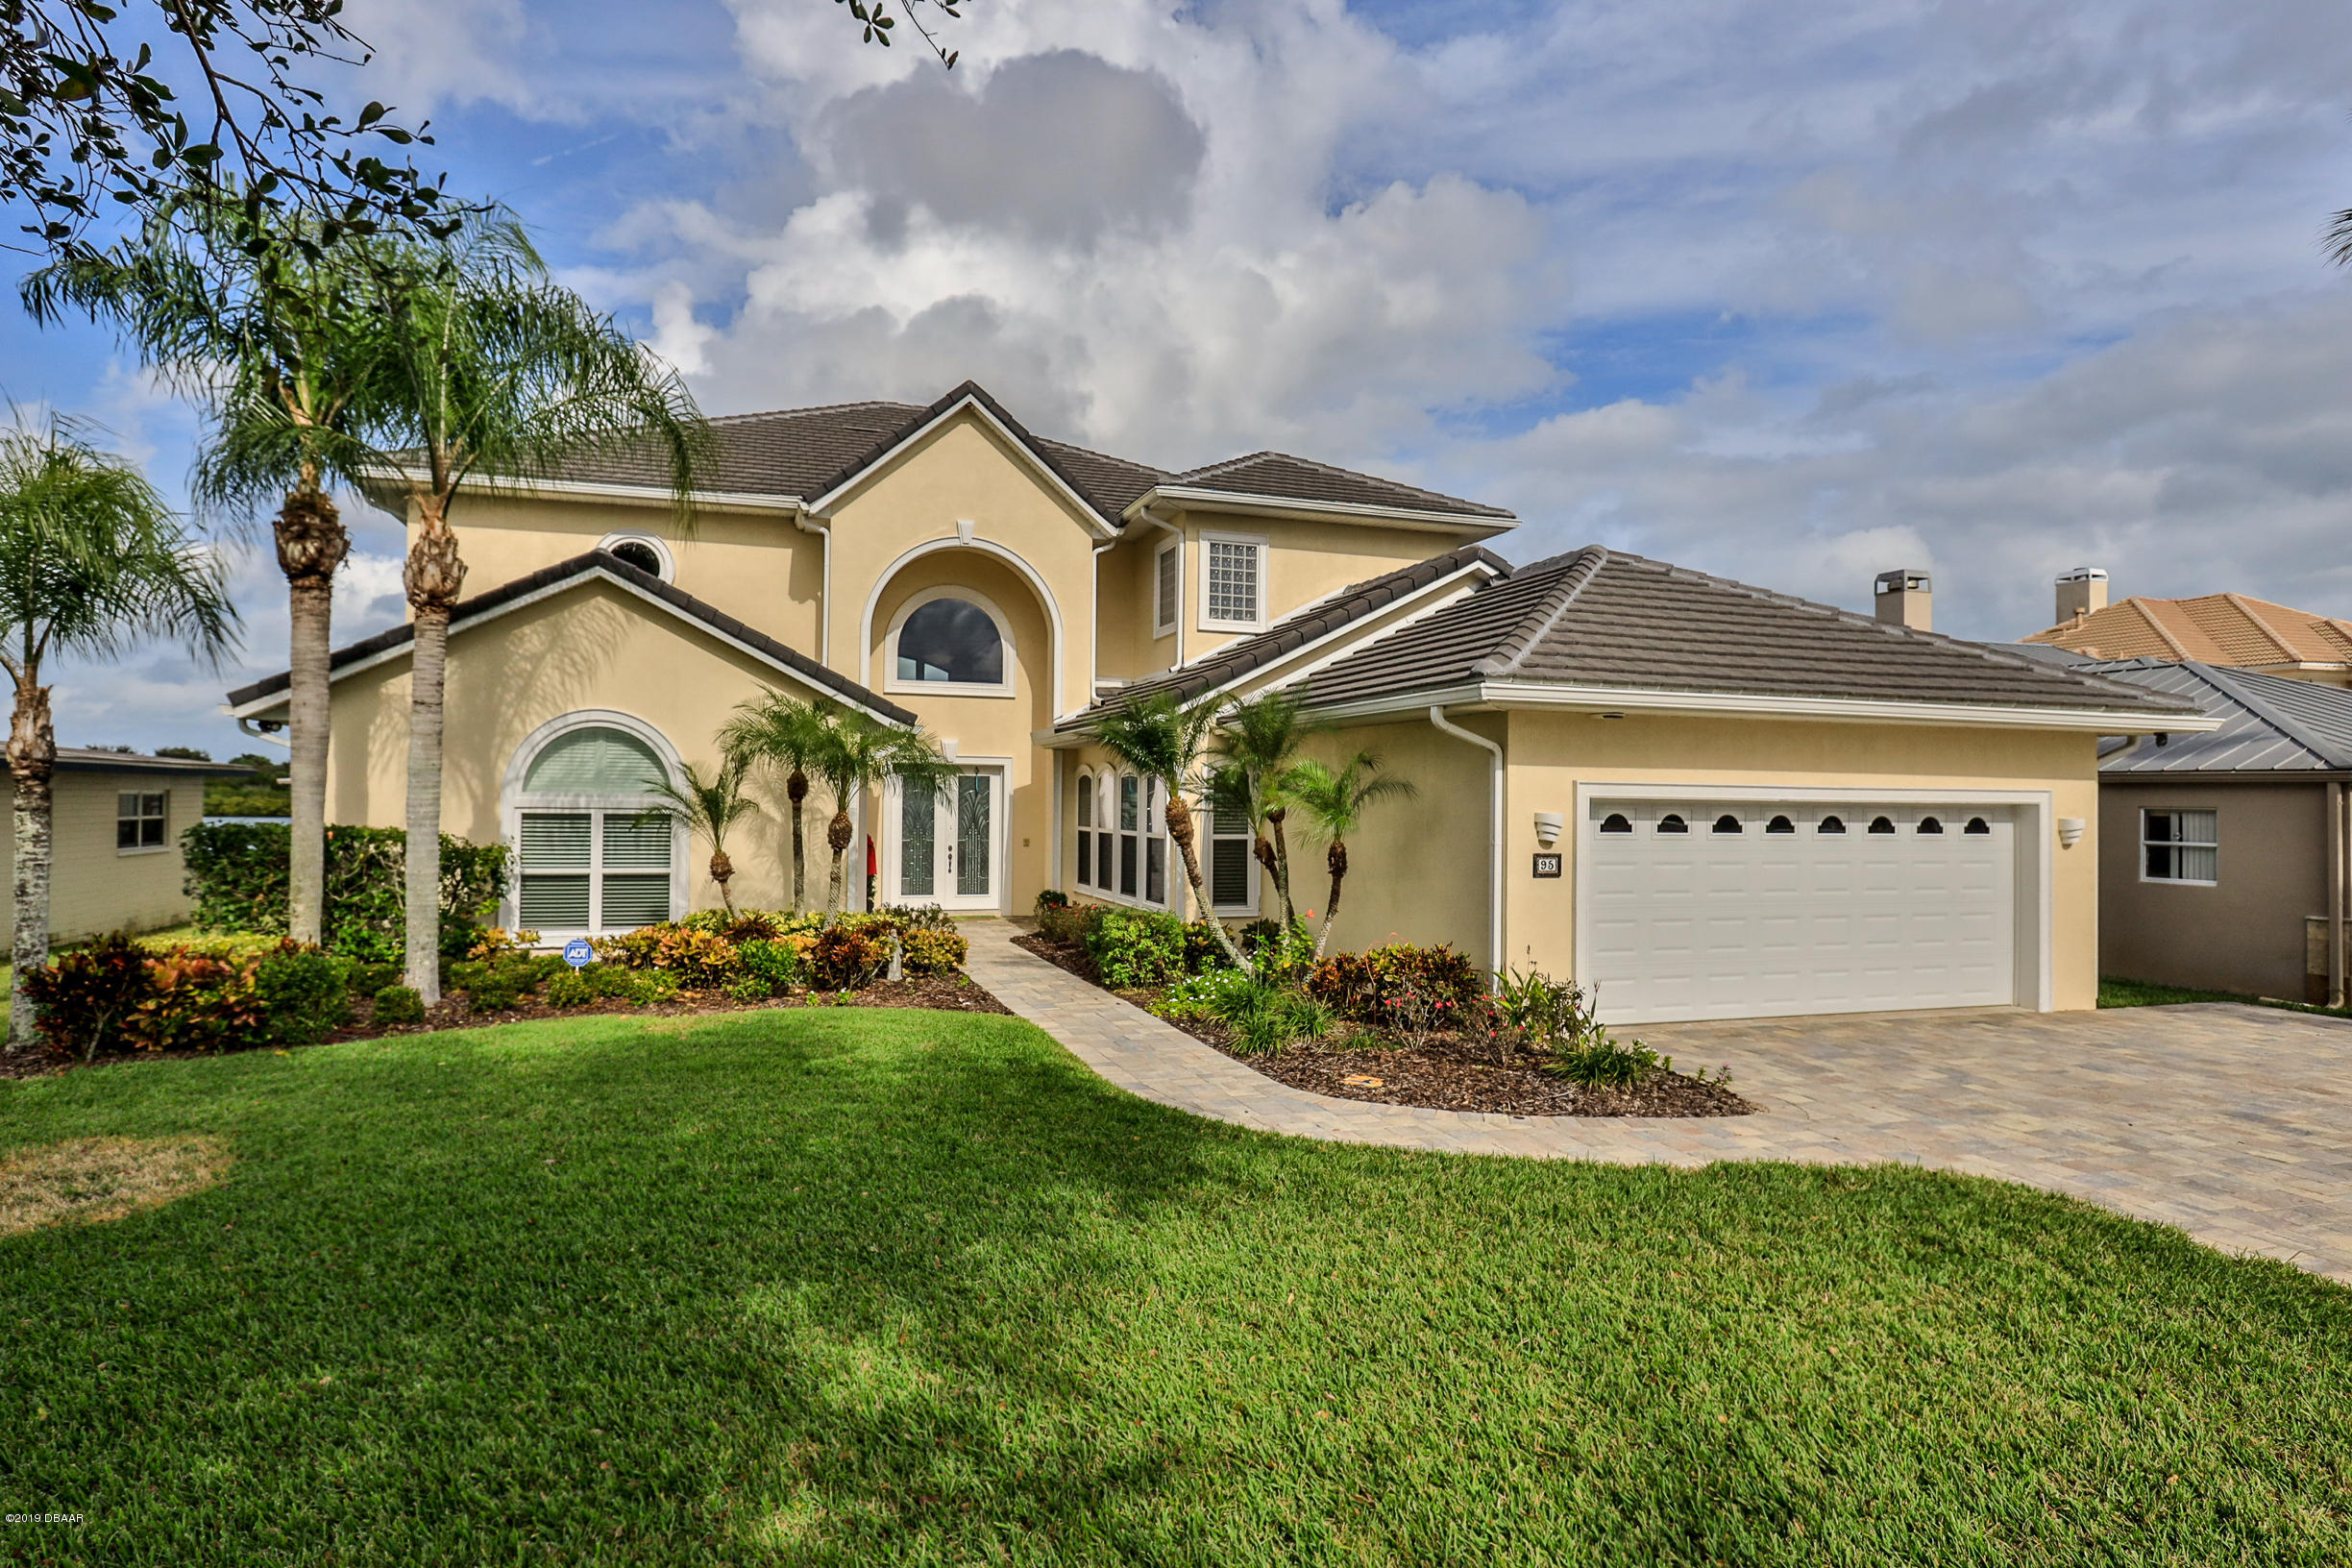 Photo of 95 Cunningham Drive, New Smyrna Beach, FL 32168